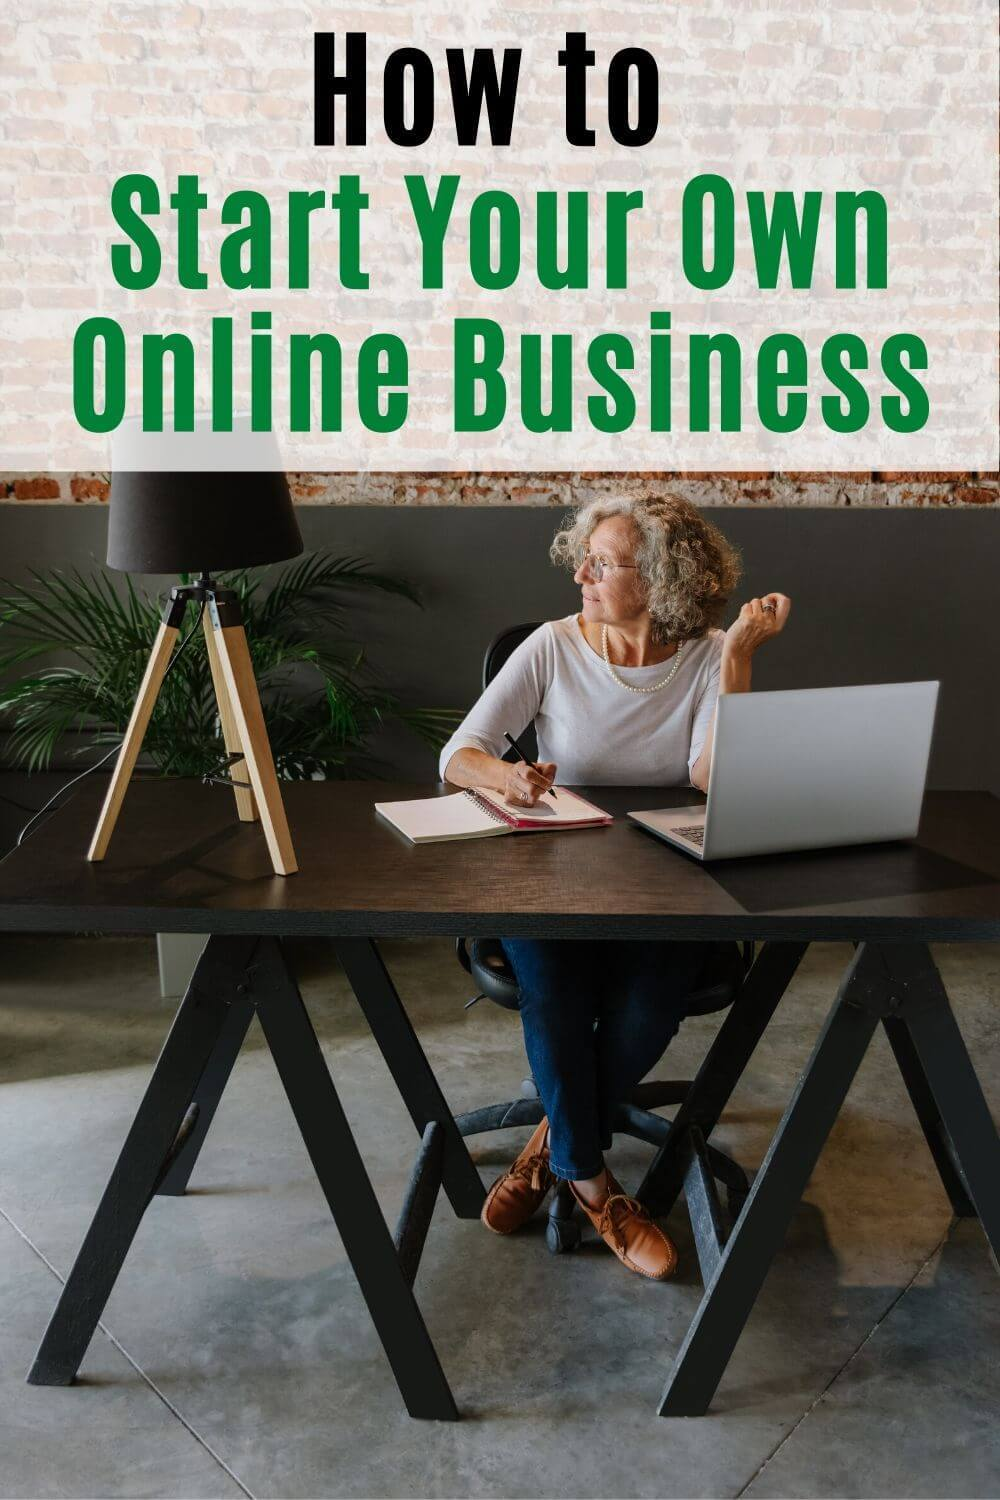 Hot to Start Your Onw Online Business